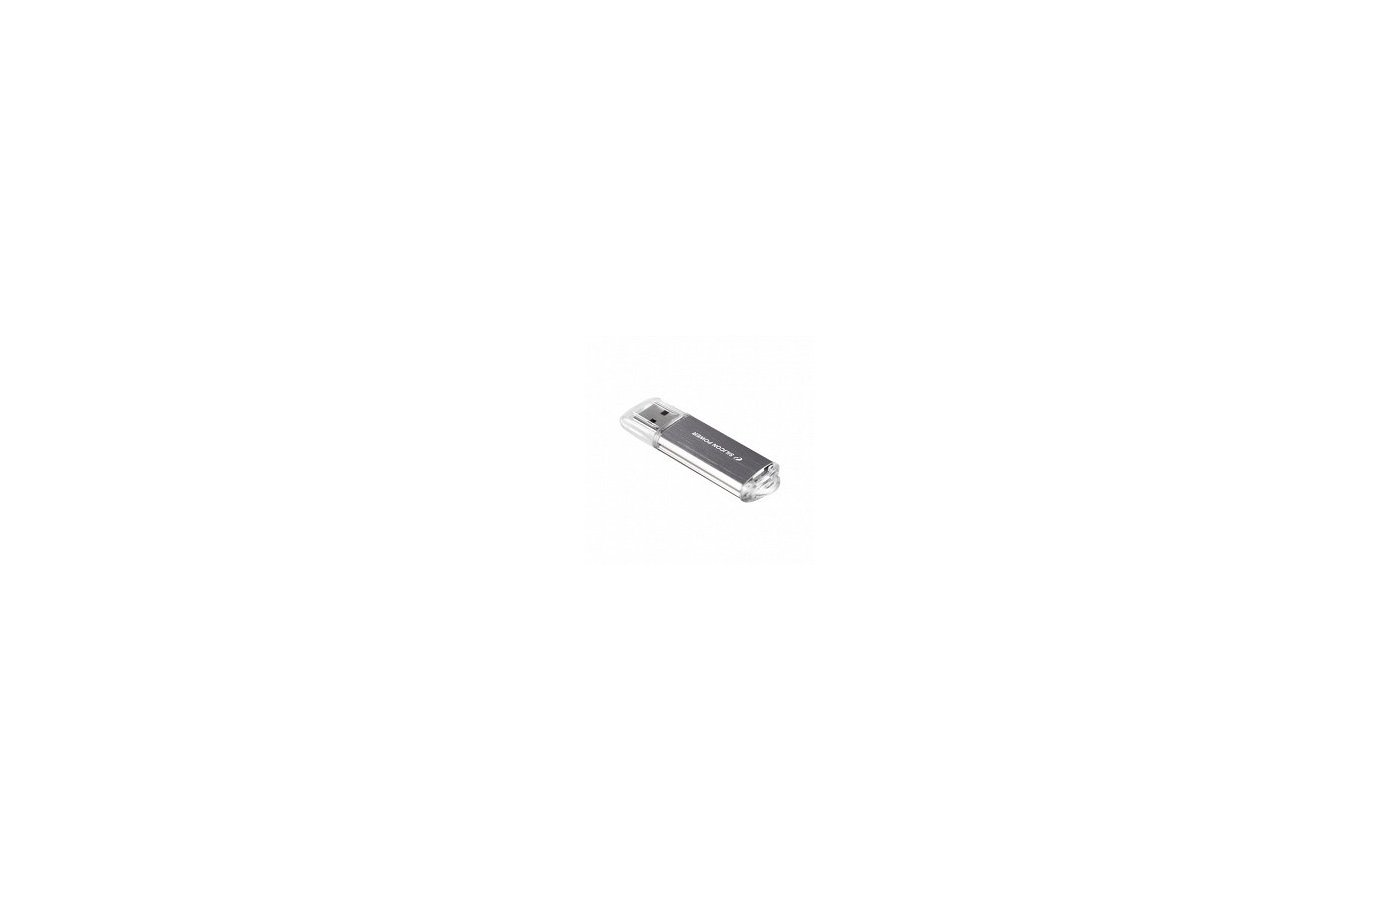 Флеш-диск USB 2.0 Silicon Power 32Gb ULTIMA II-I Series SP032GBUF2M01V1K черный